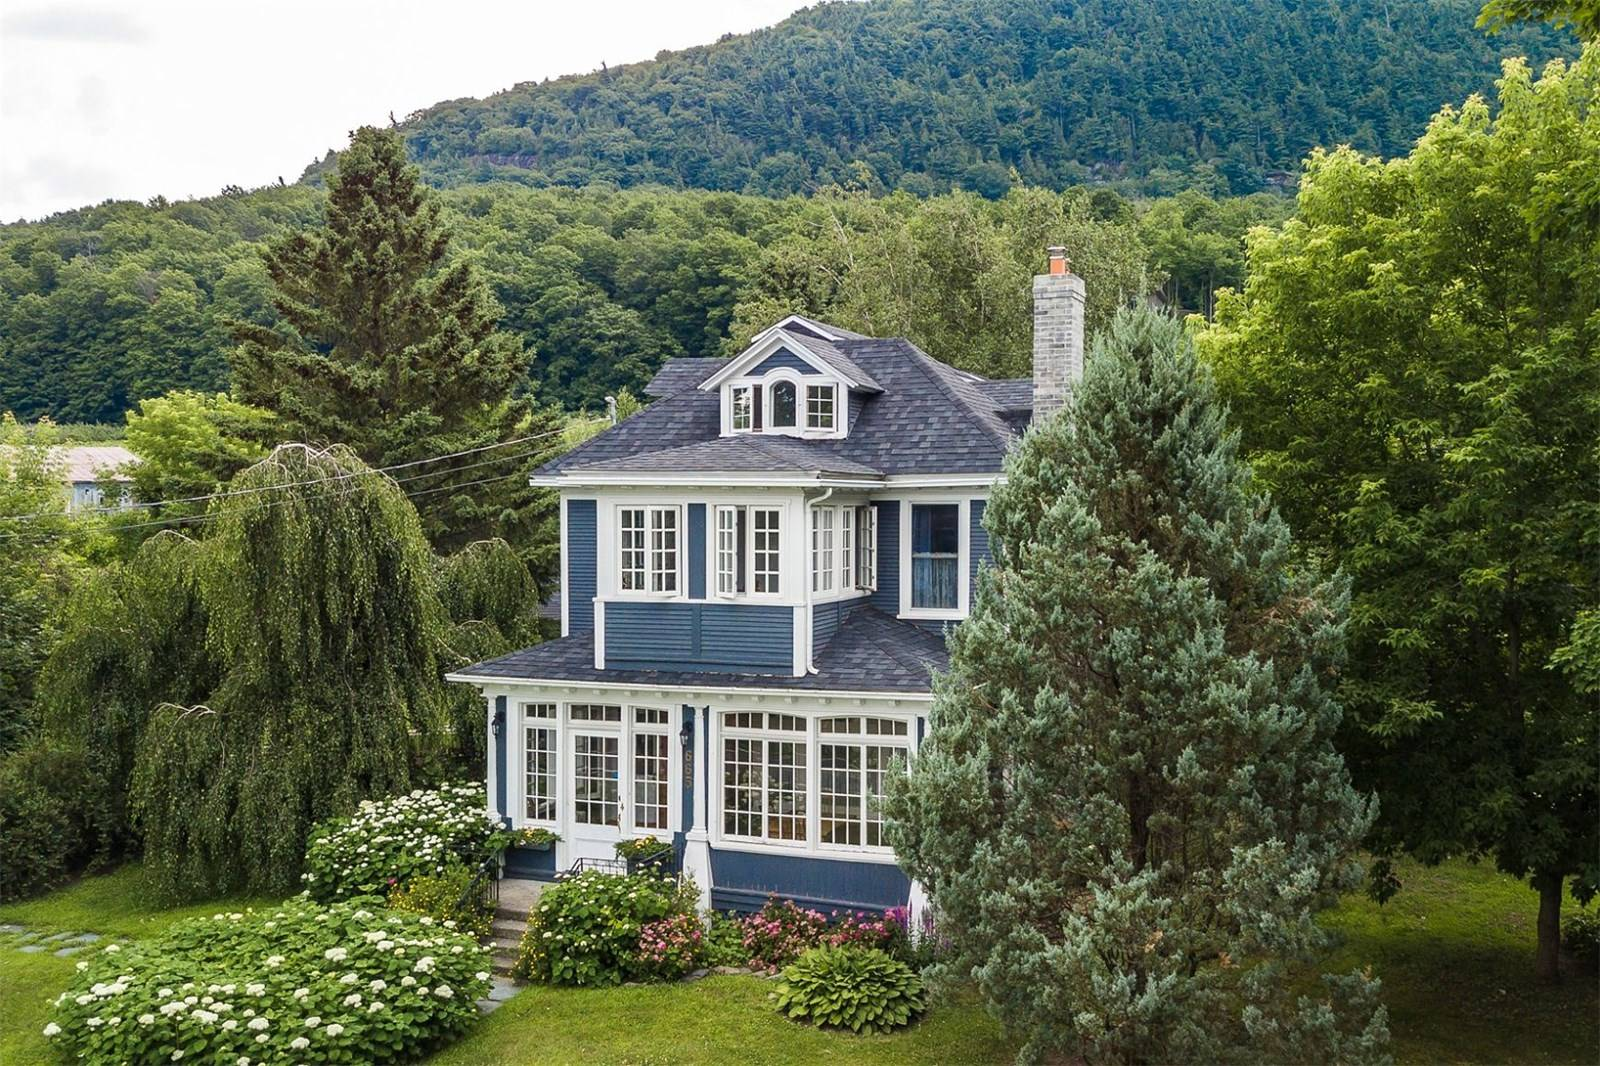 canada, quebec, victorian, home, house, vineyard, mountains, trees, pool, garden, design, exterior, windows, trim, flowers, beautiful, charming, lovely, gorgeous, nature, for sale, real estate, canadian, quebecois, countryside